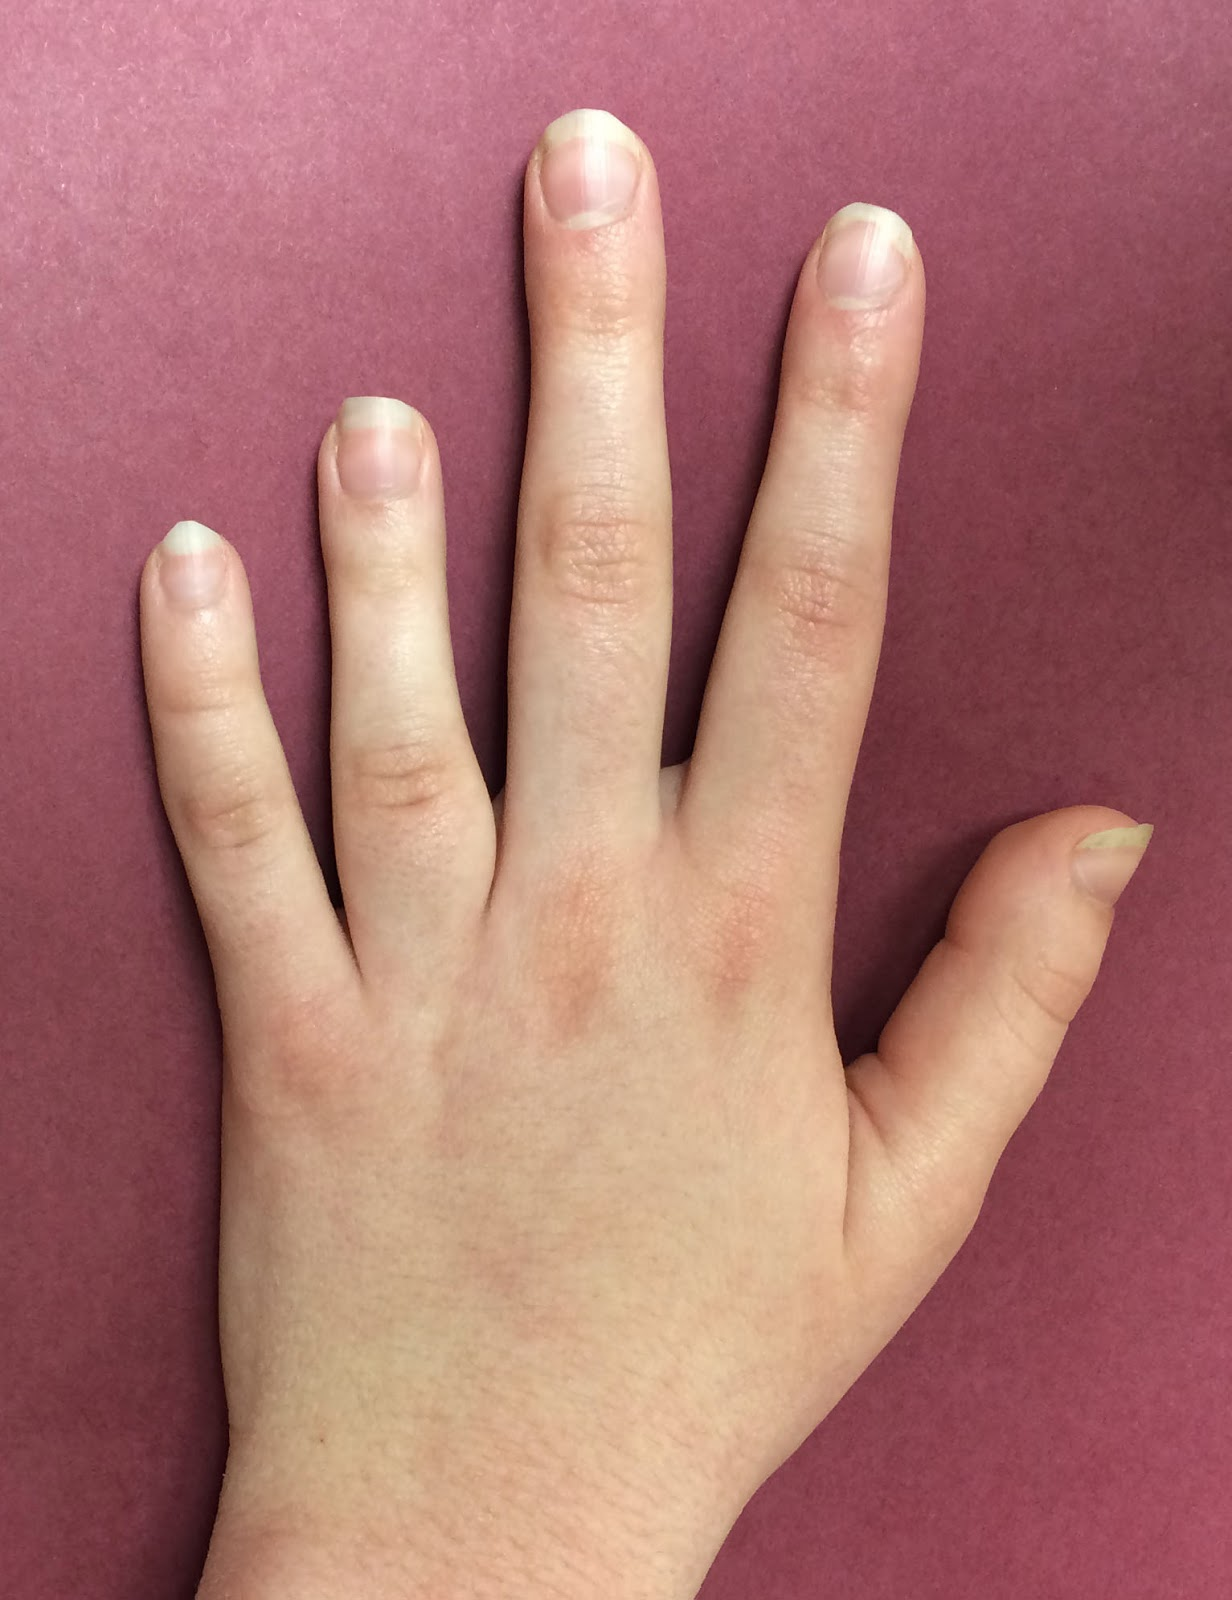 Congenital Hand And Arm Differences: Patient Presenting With A Short 4th Metacarpal